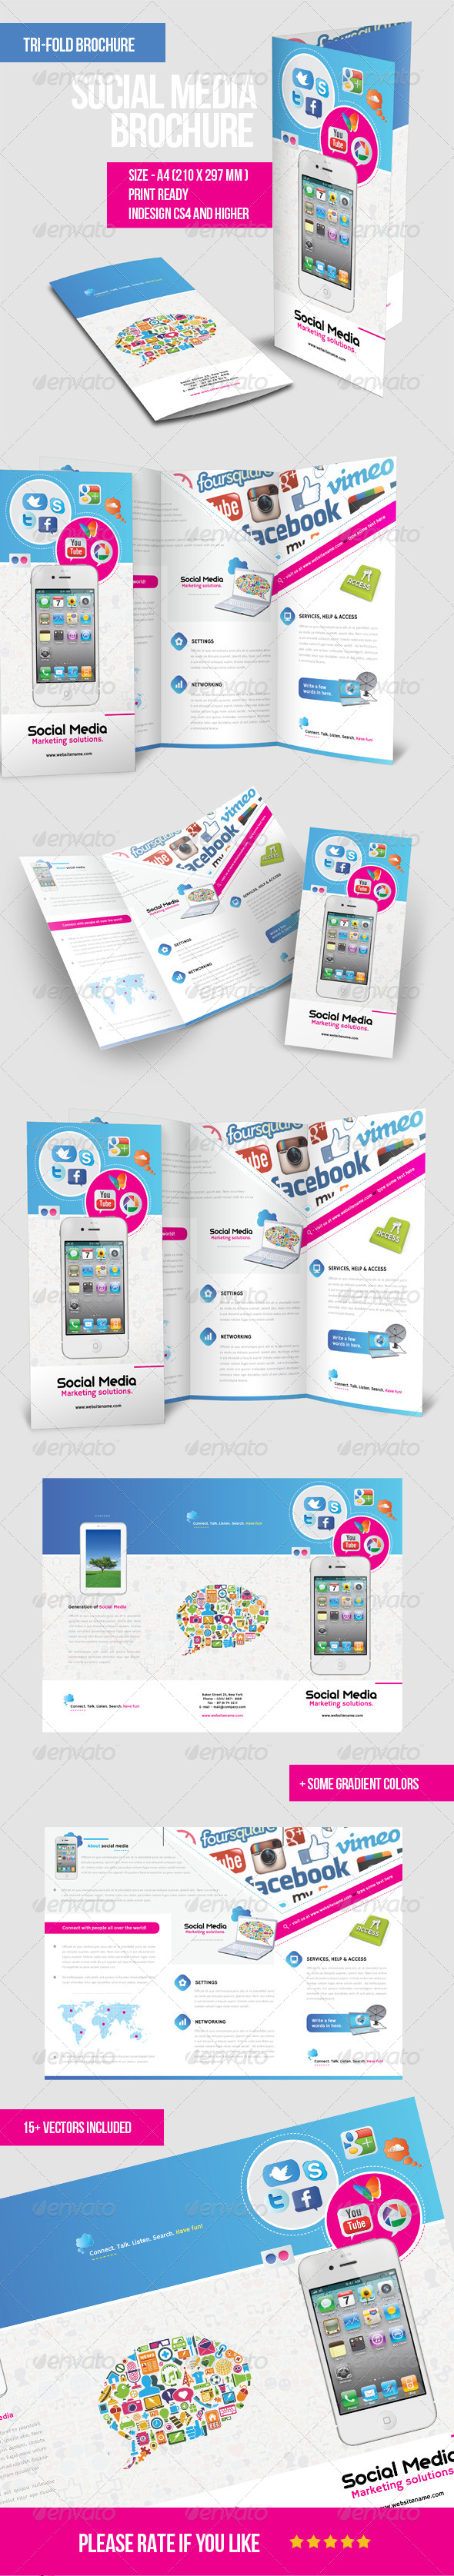 GraphicRiver Mobile & Social Media Tri fold Brochure 6592343